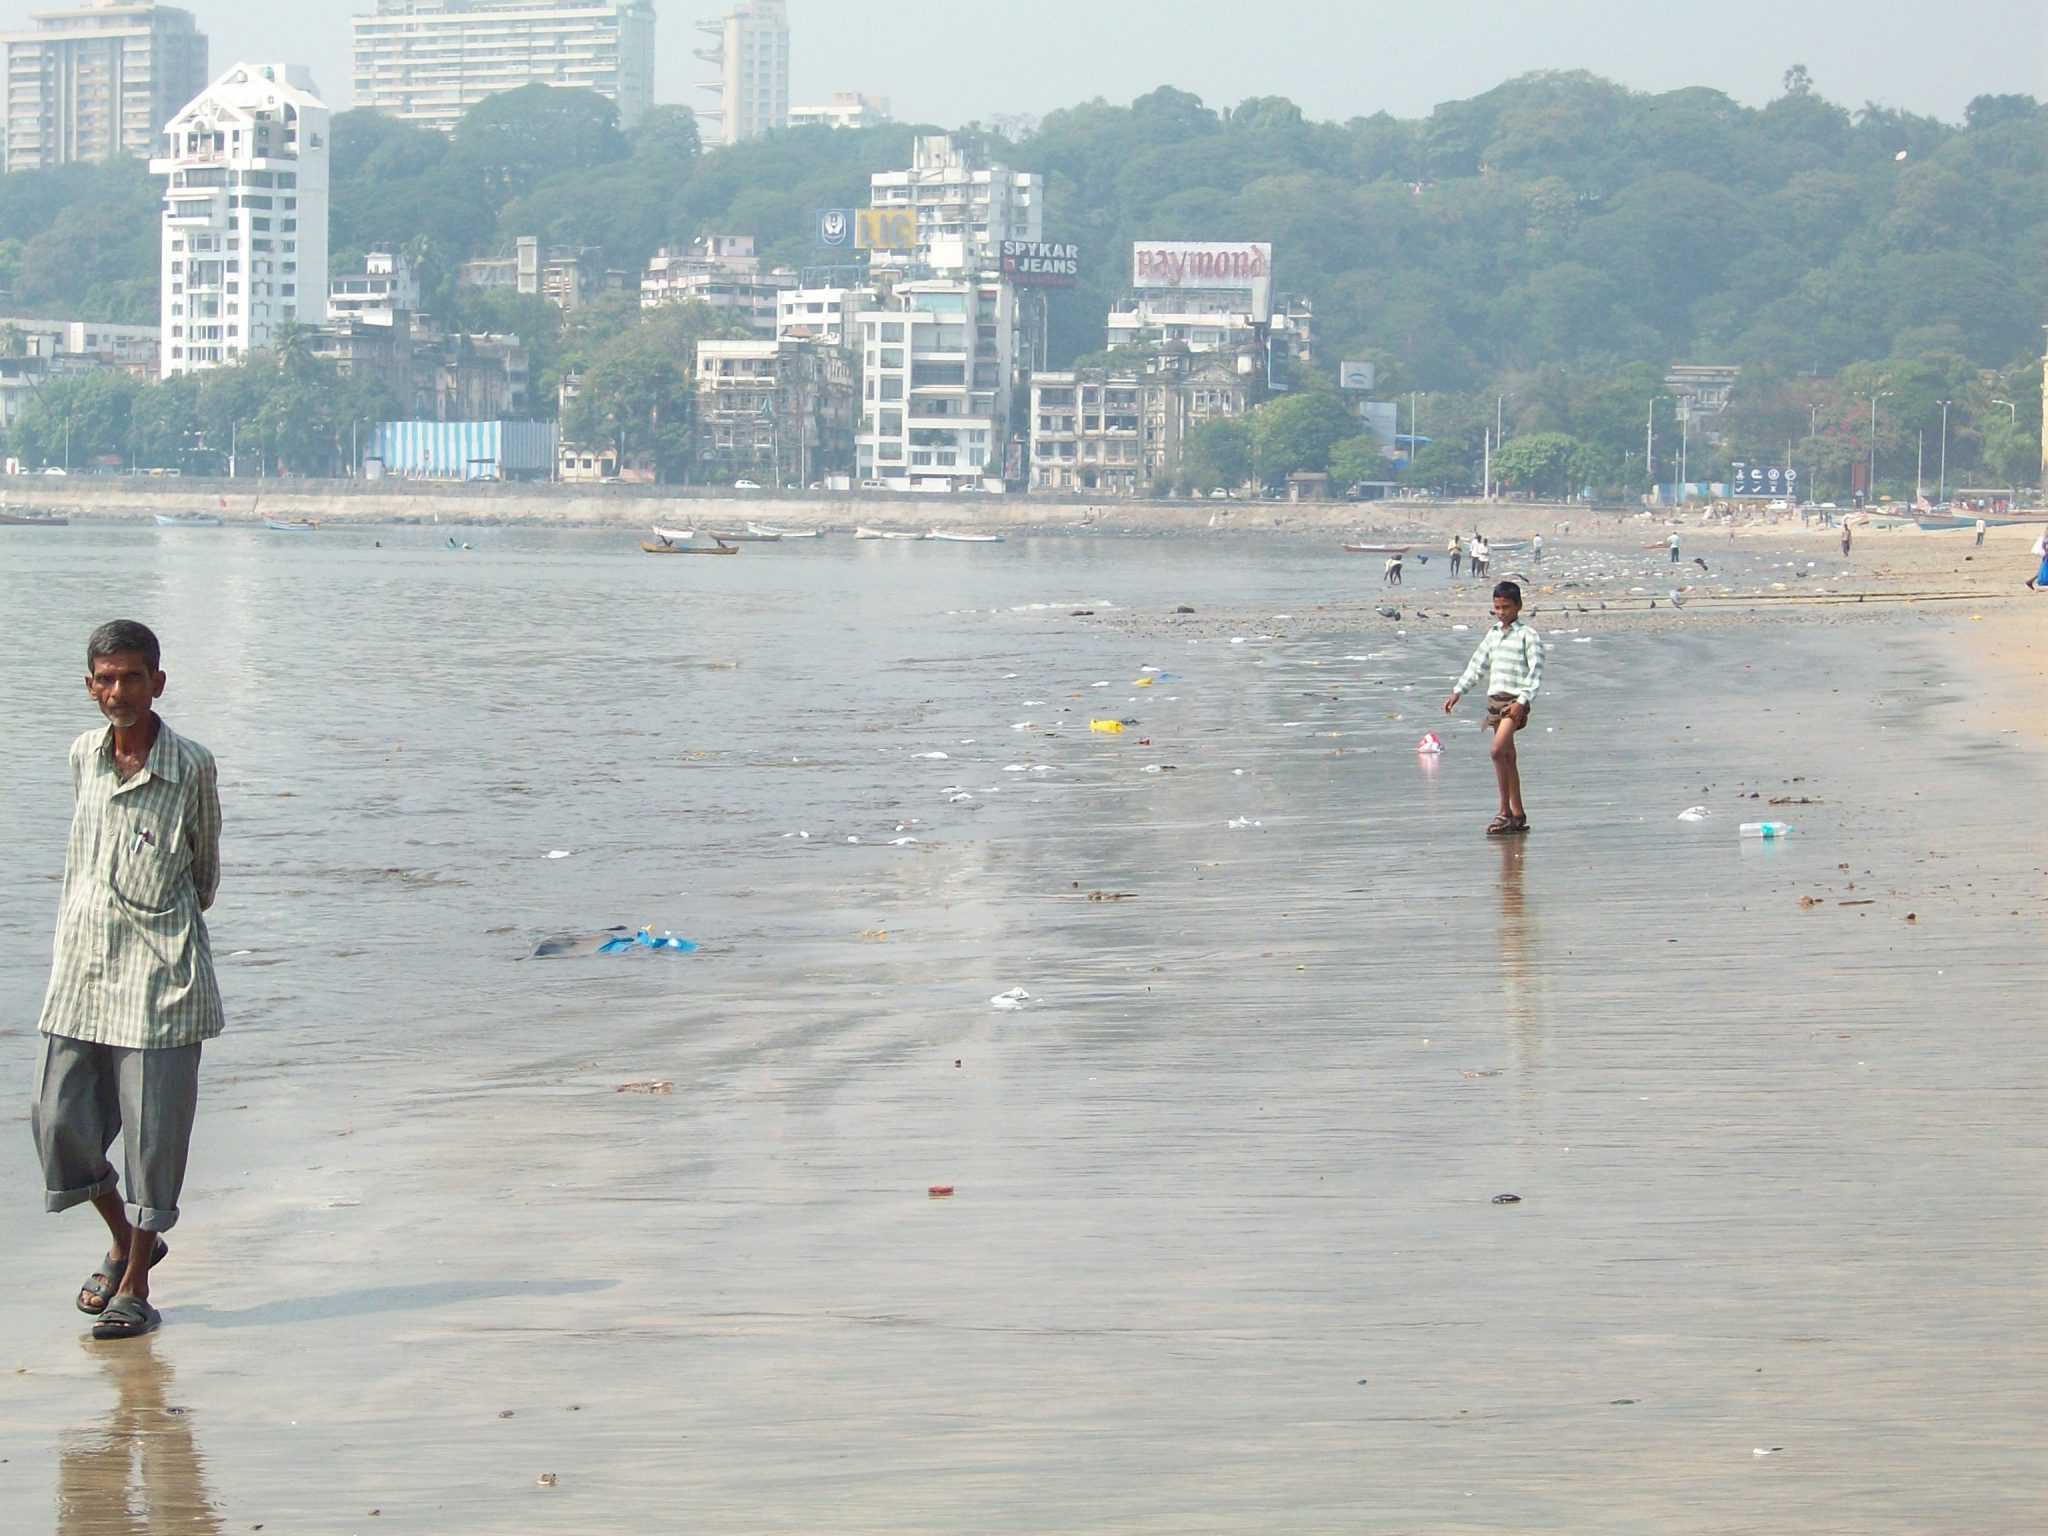 Mumbai Beach - The Average Percent Of Income Donated To Charity Can Improve